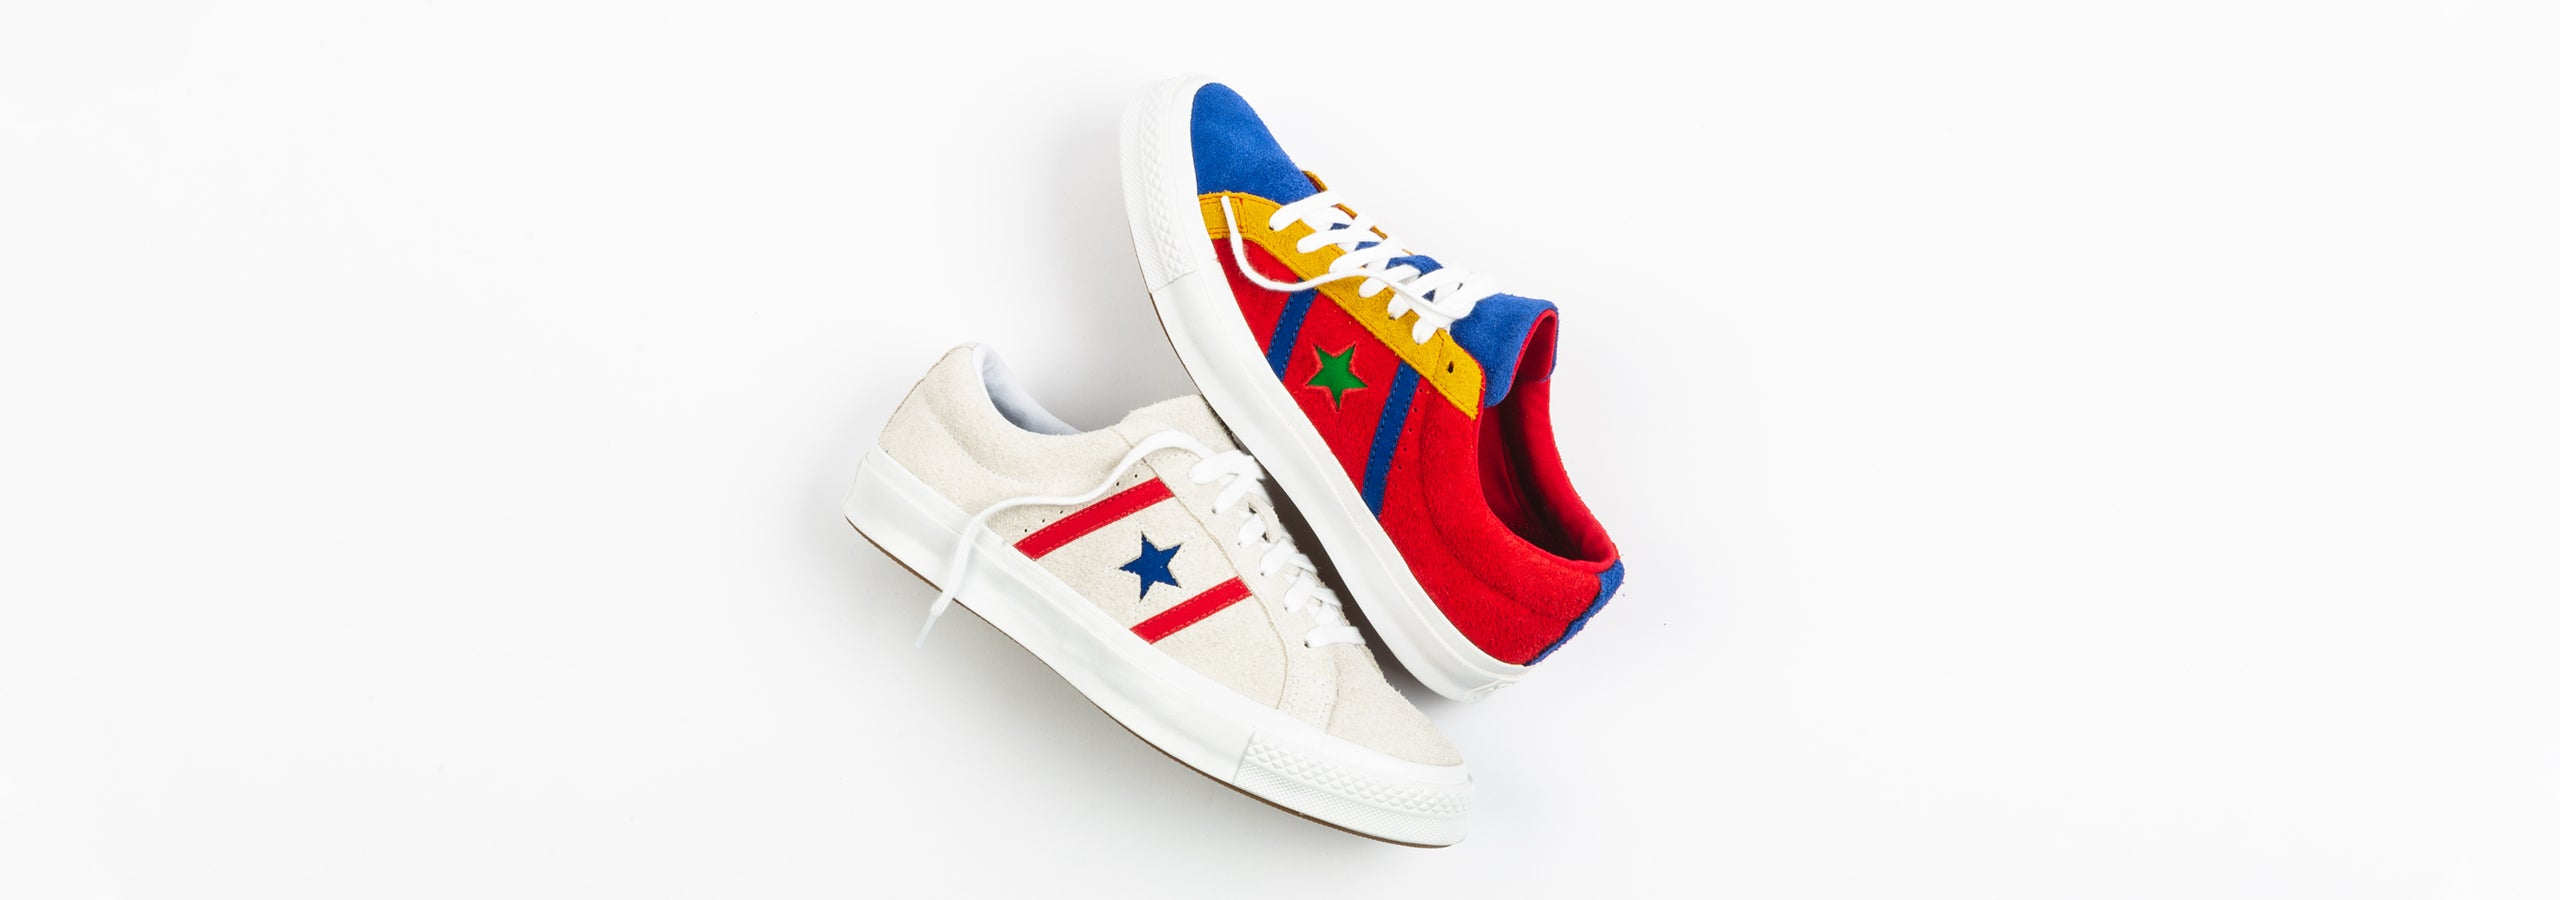 f24891f64250 Converse One Star Academy OX. SHOP NOW